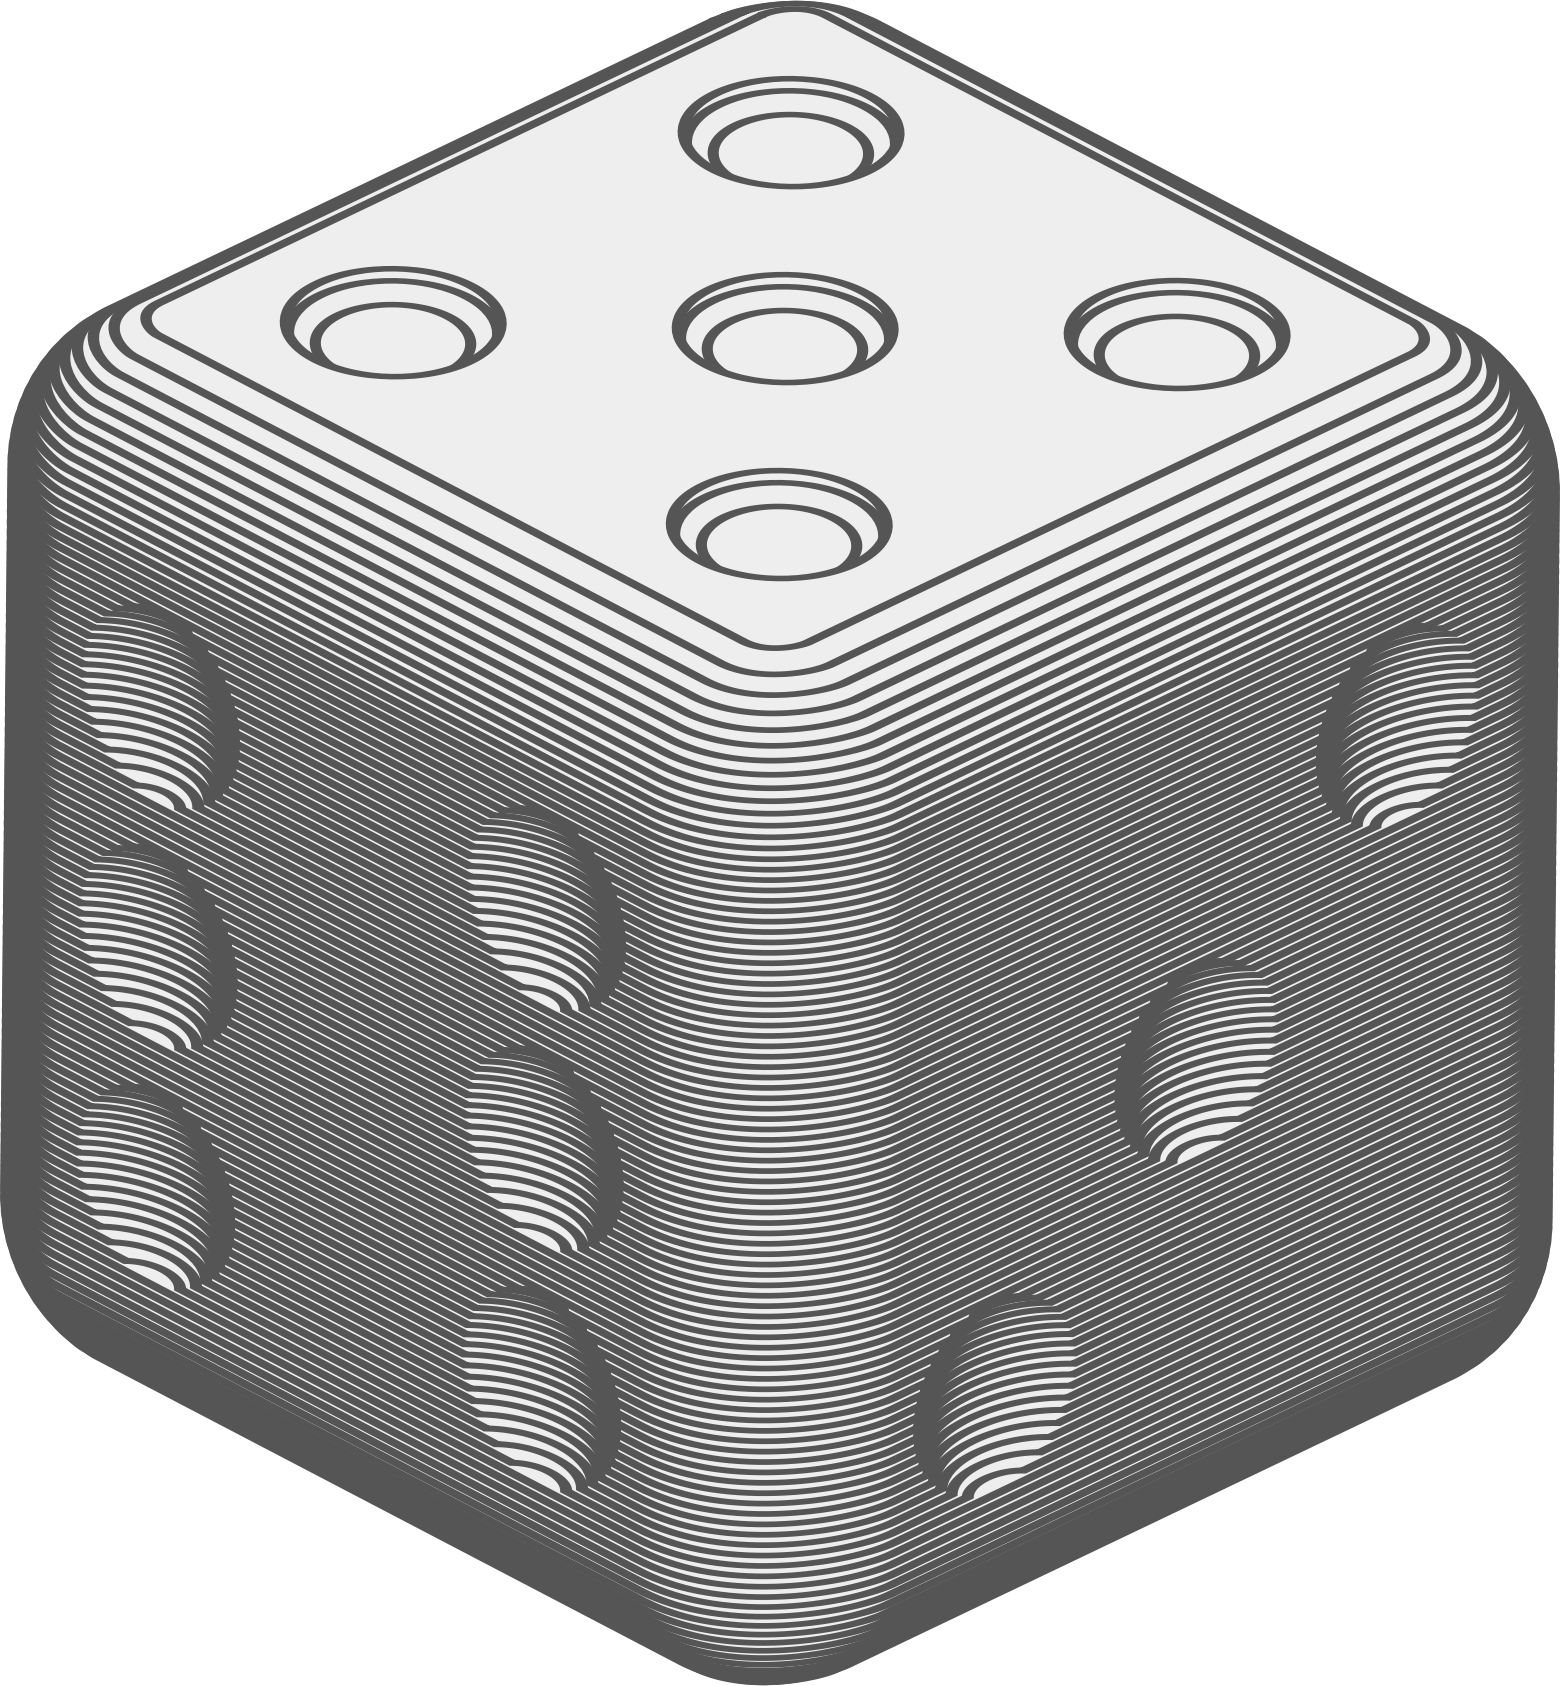 Animated Dice 2 by jarda